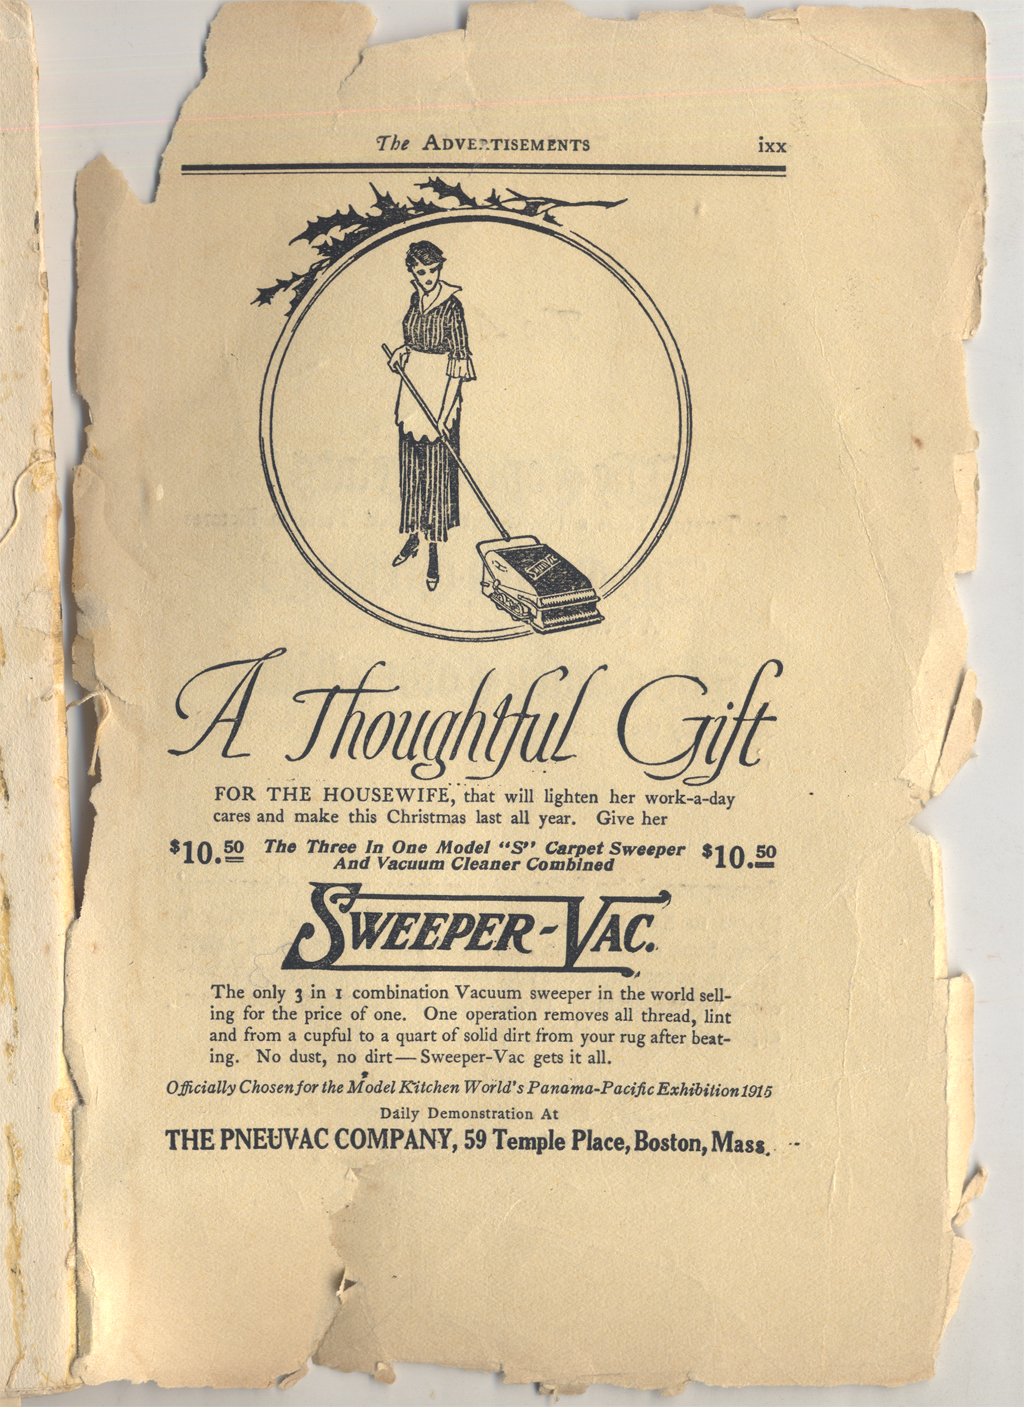 Advertisement for Sweeper Vac. From The Cornhill Booklet (December 1914). Illustration likely by Dwiggins.